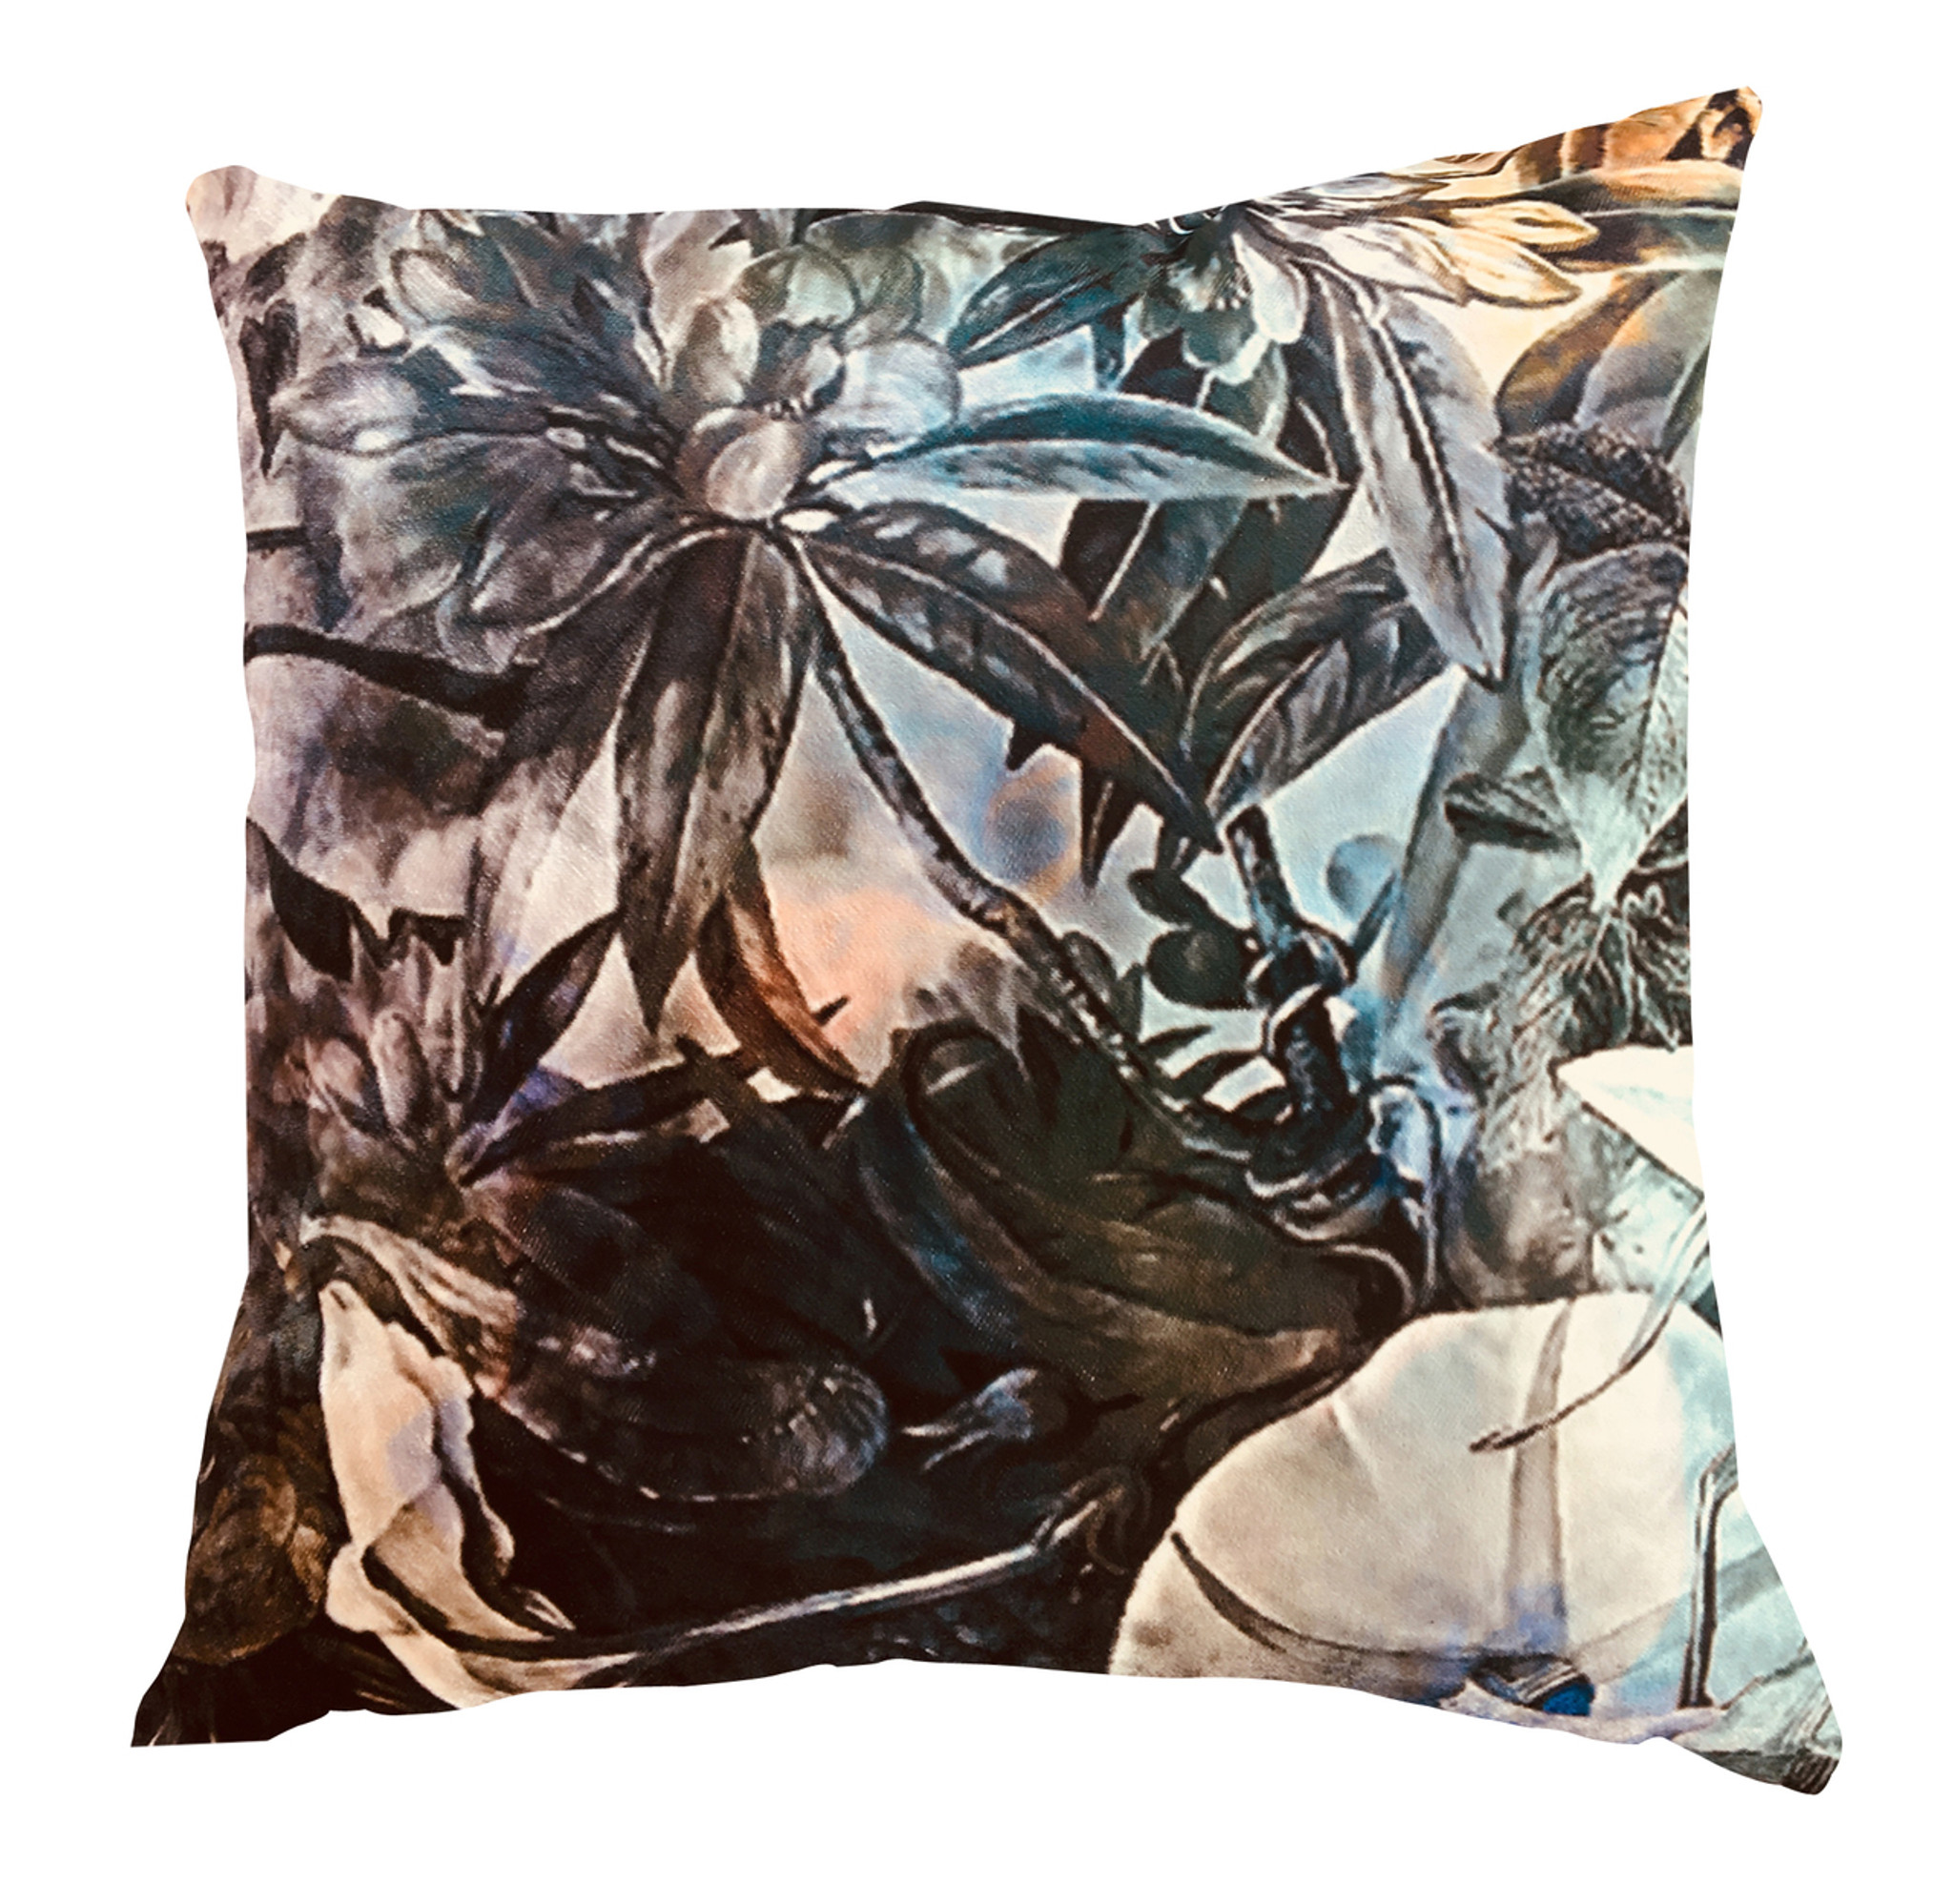 Cushion Cover - Flower Power Incandescent